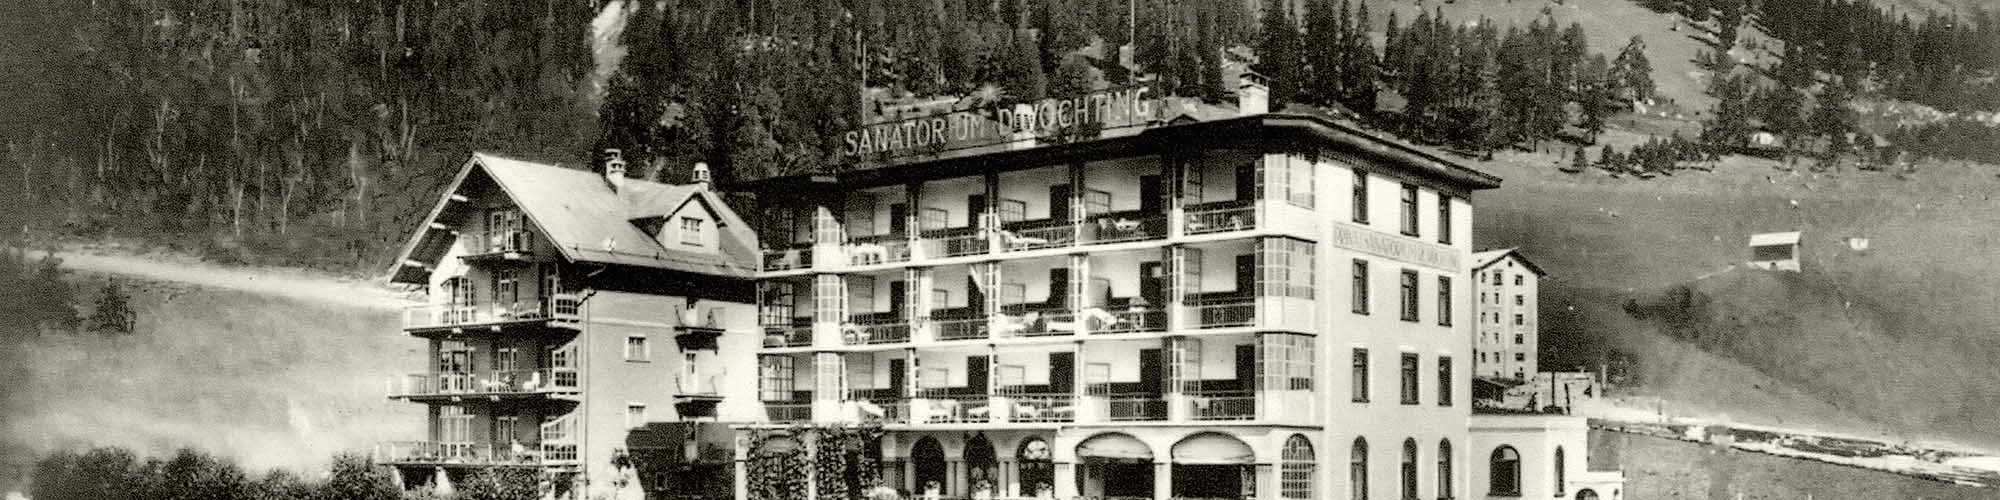 Hotel Davos - The history - of the hotel